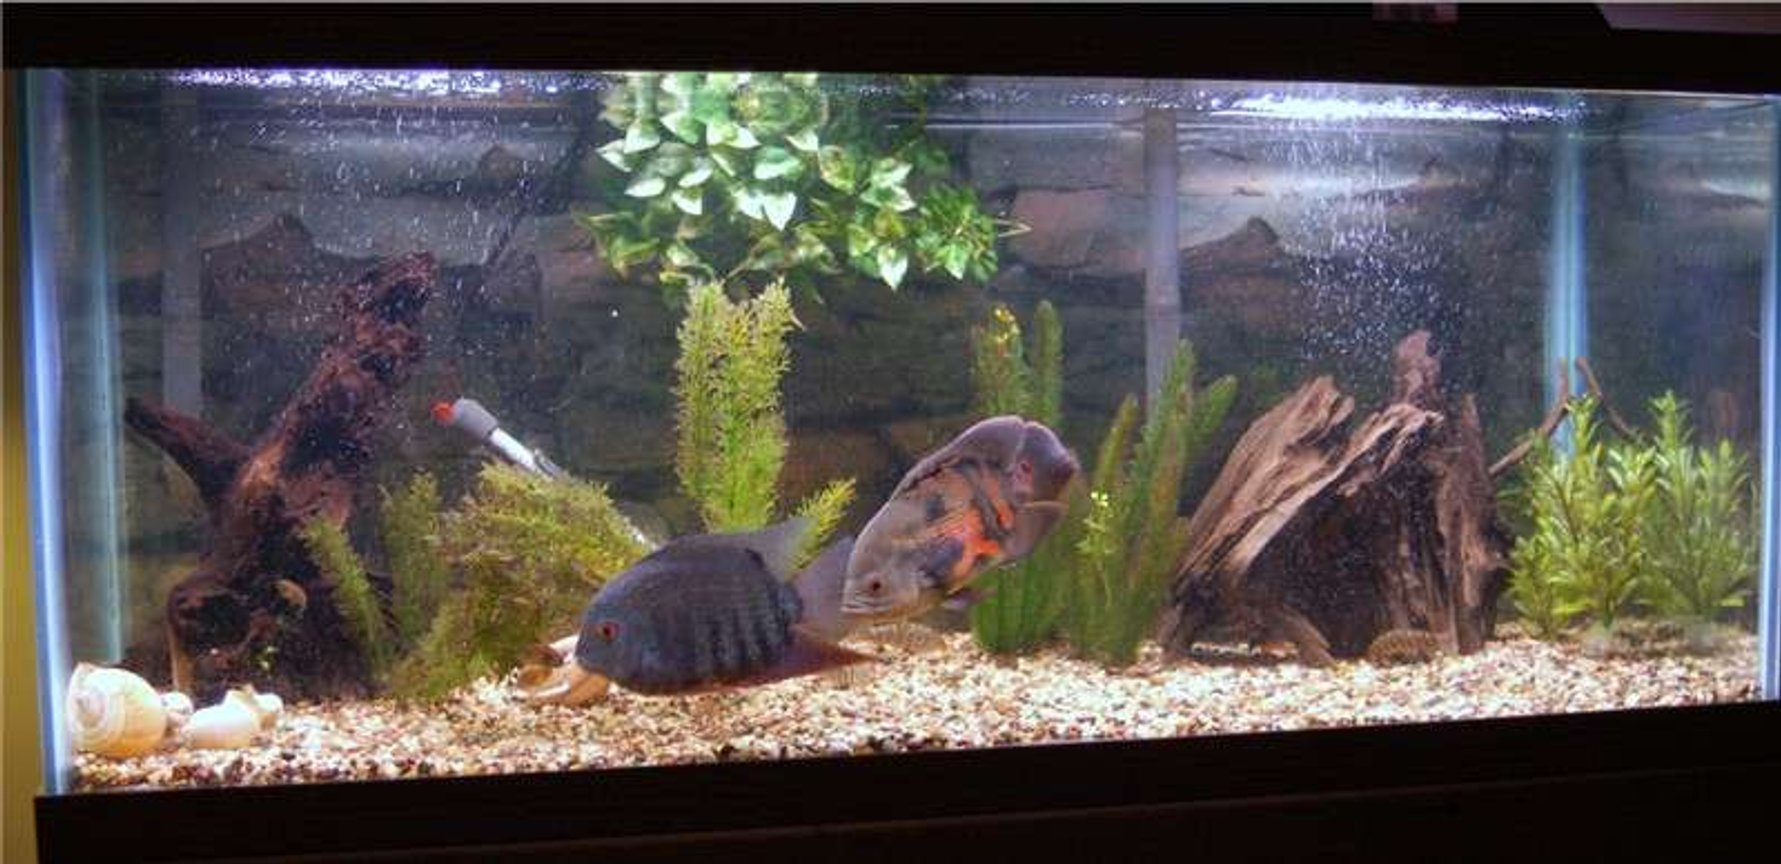 freshwater fish tank (mostly fish and non-living decorations) - 75g; gravel substrate; driftwood; artificial plants; oscar; severum; sailfin plec; loaches